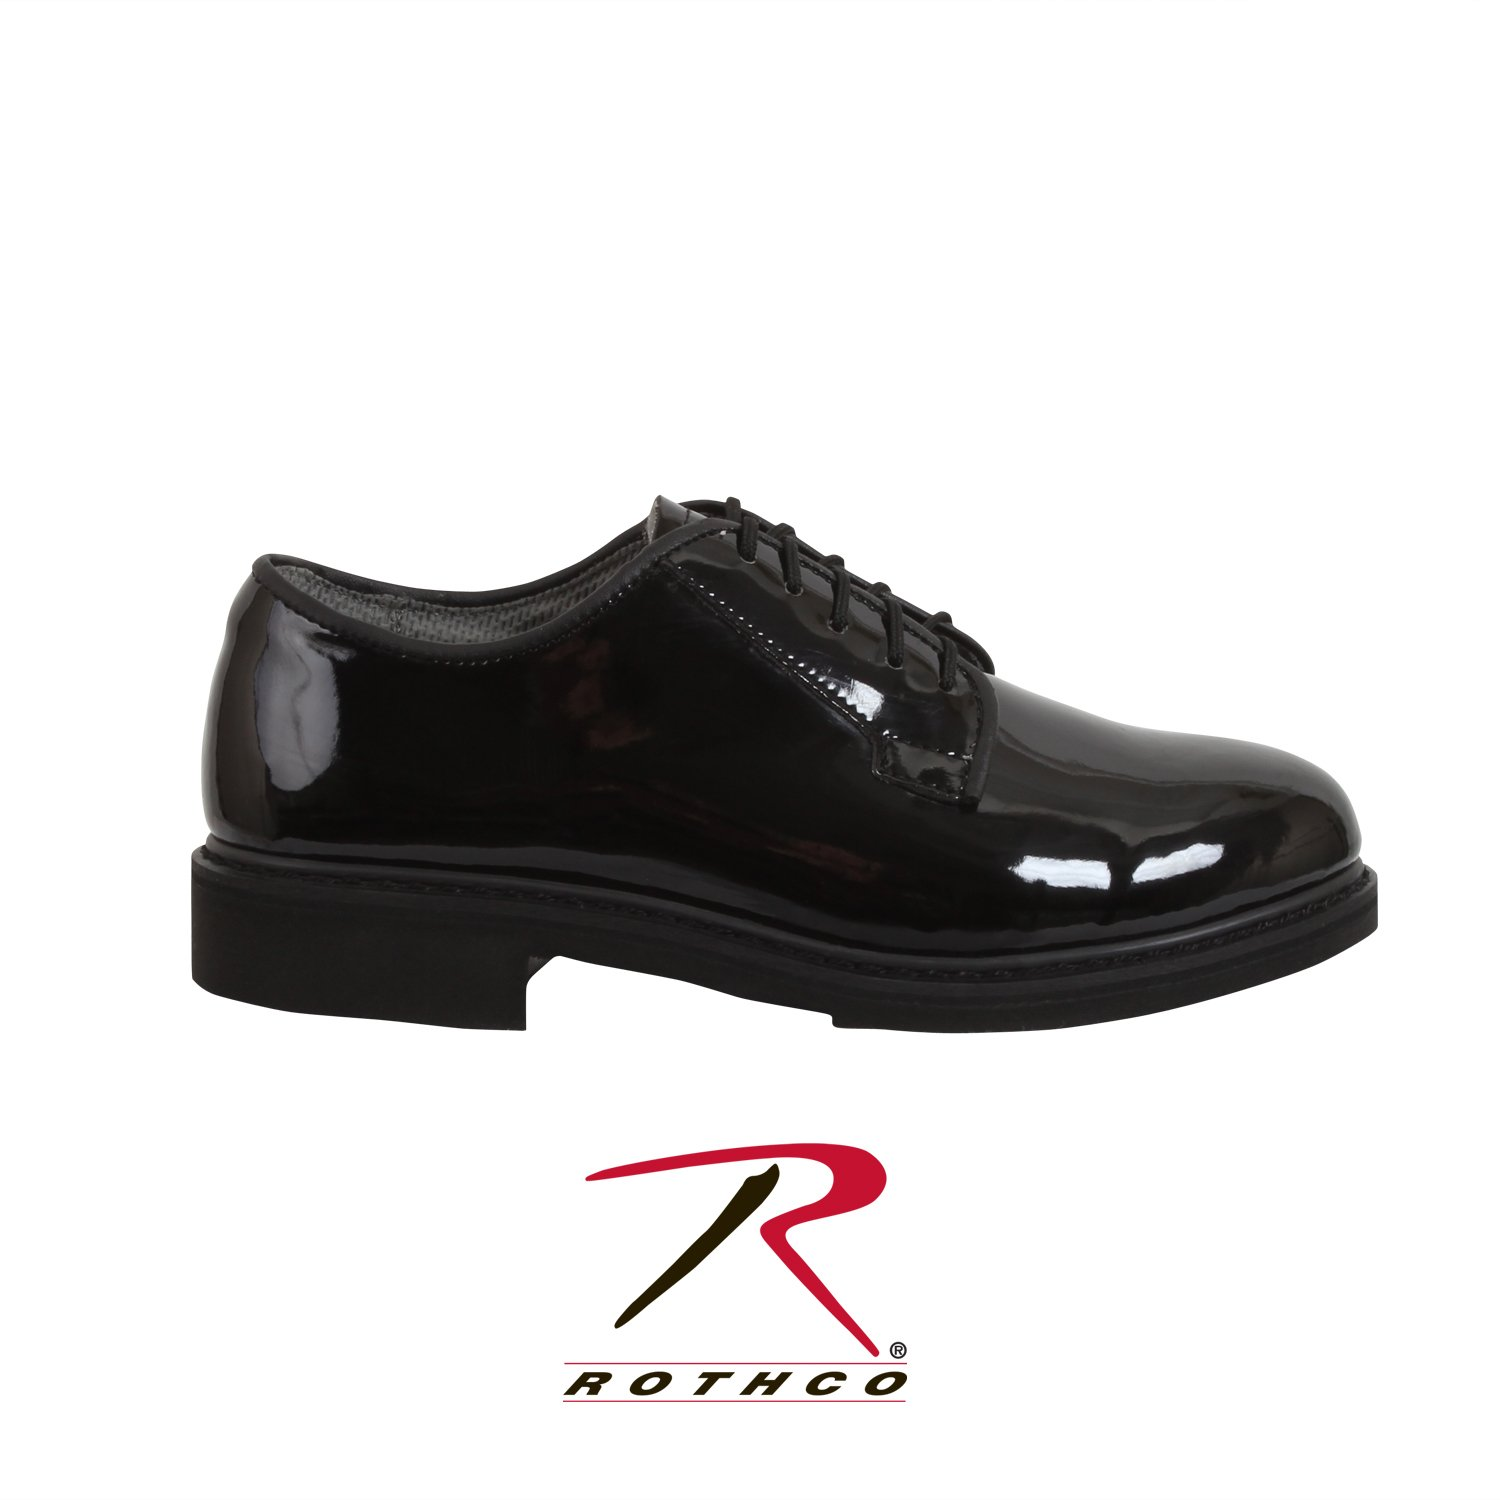 Rothco Uniform Oxford/Hi-Gloss Shoe Black, 4 by Rothco